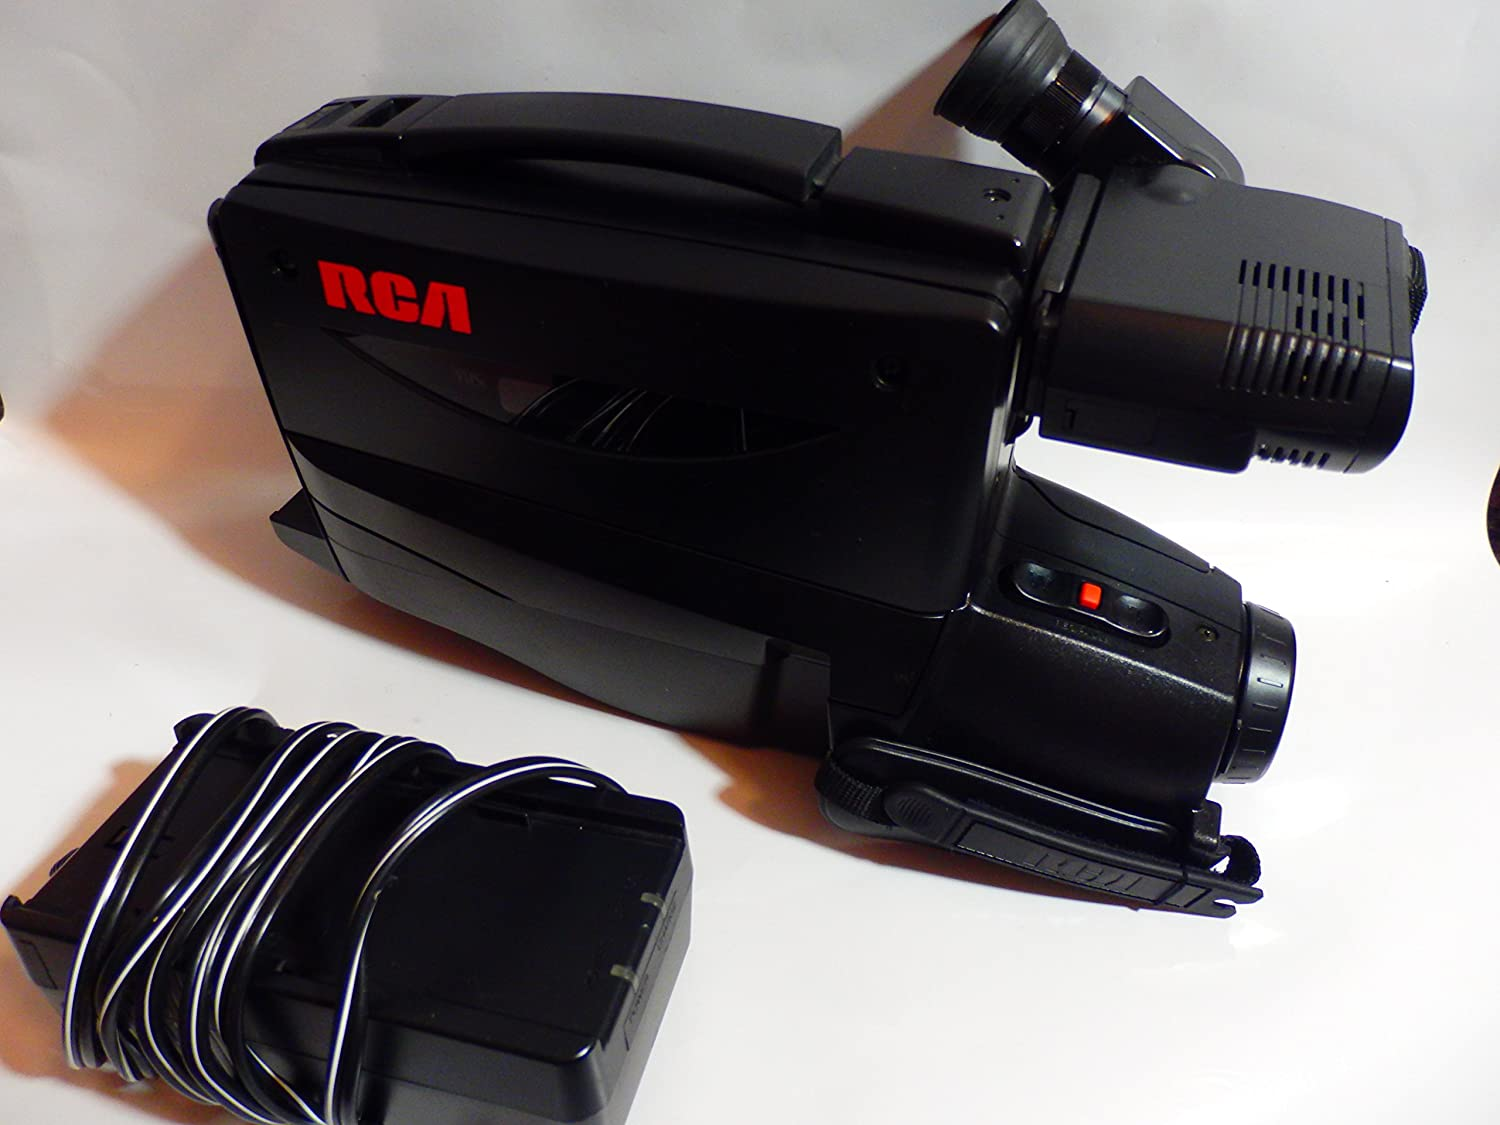 Amazon Com For Parts Untested Rca Dsp3 Camcorder Home Movie Vhs Video Recorder Electronics